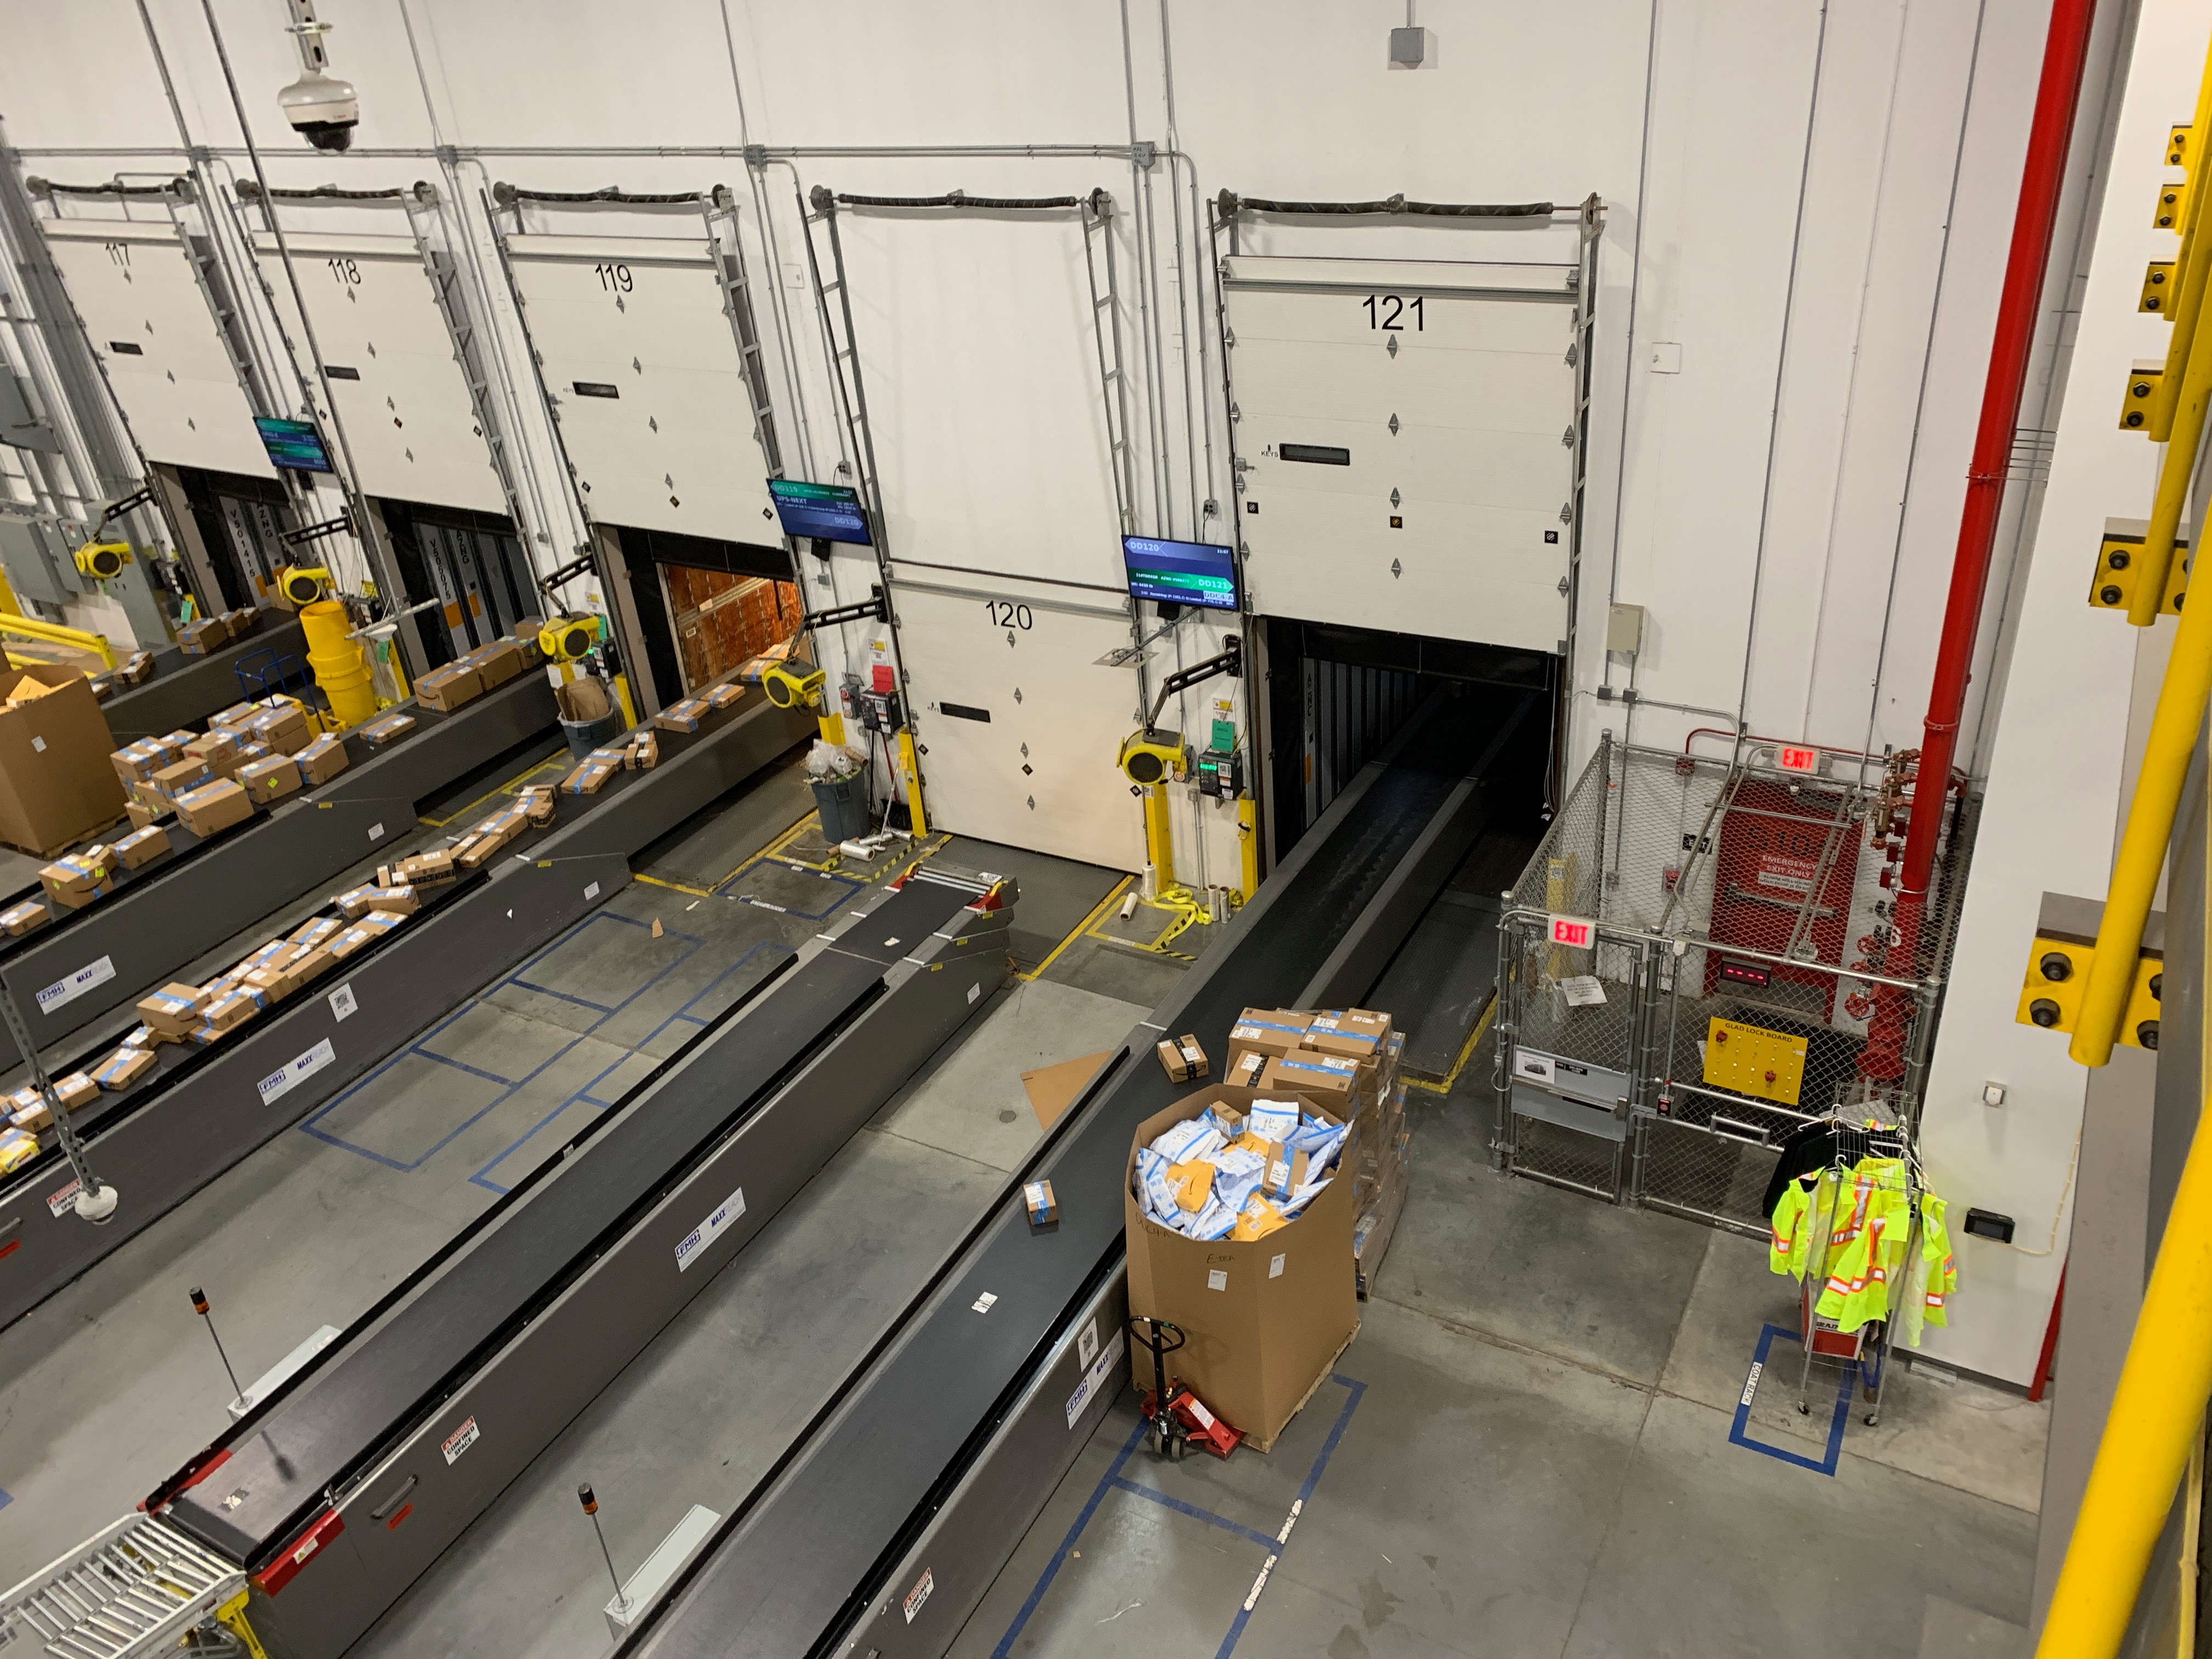 extendable conveyor belts at the amazon warehouse